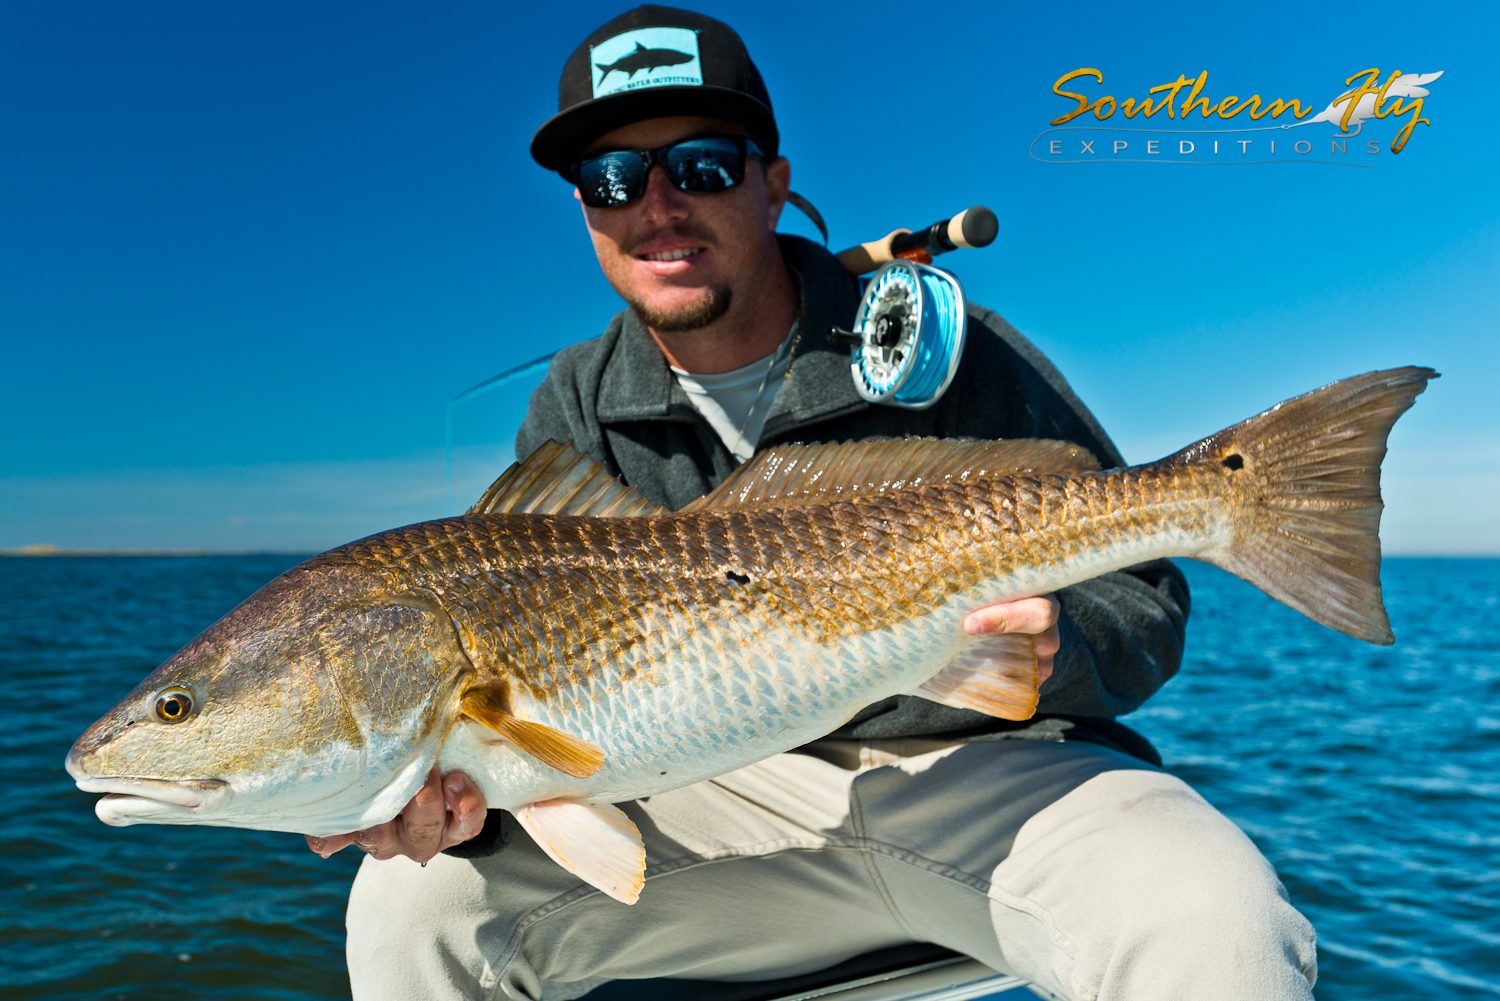 Catch Redfish with Southern Fly Expeditions - A New Orleans Fly Fishing Guide